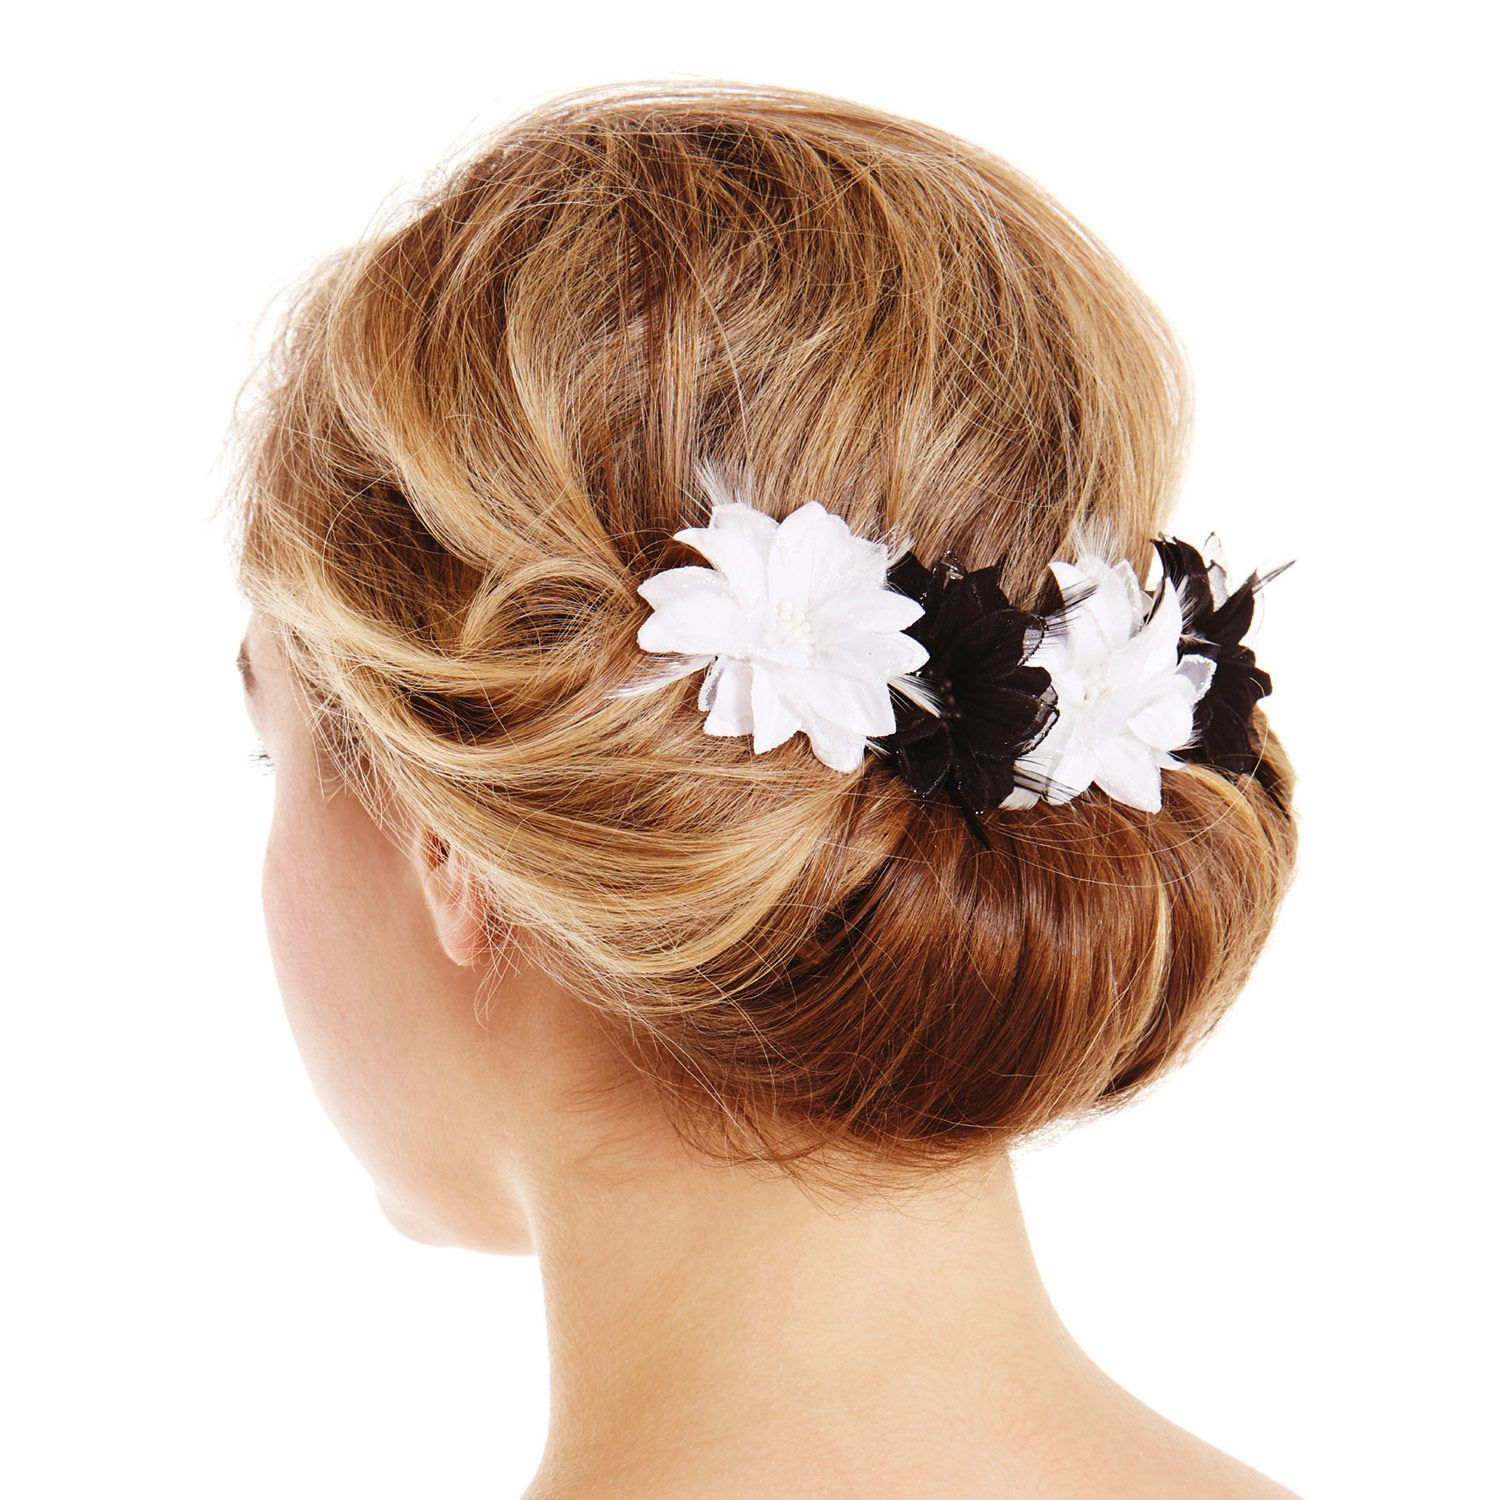 Create a classic hair up look with this easy to use